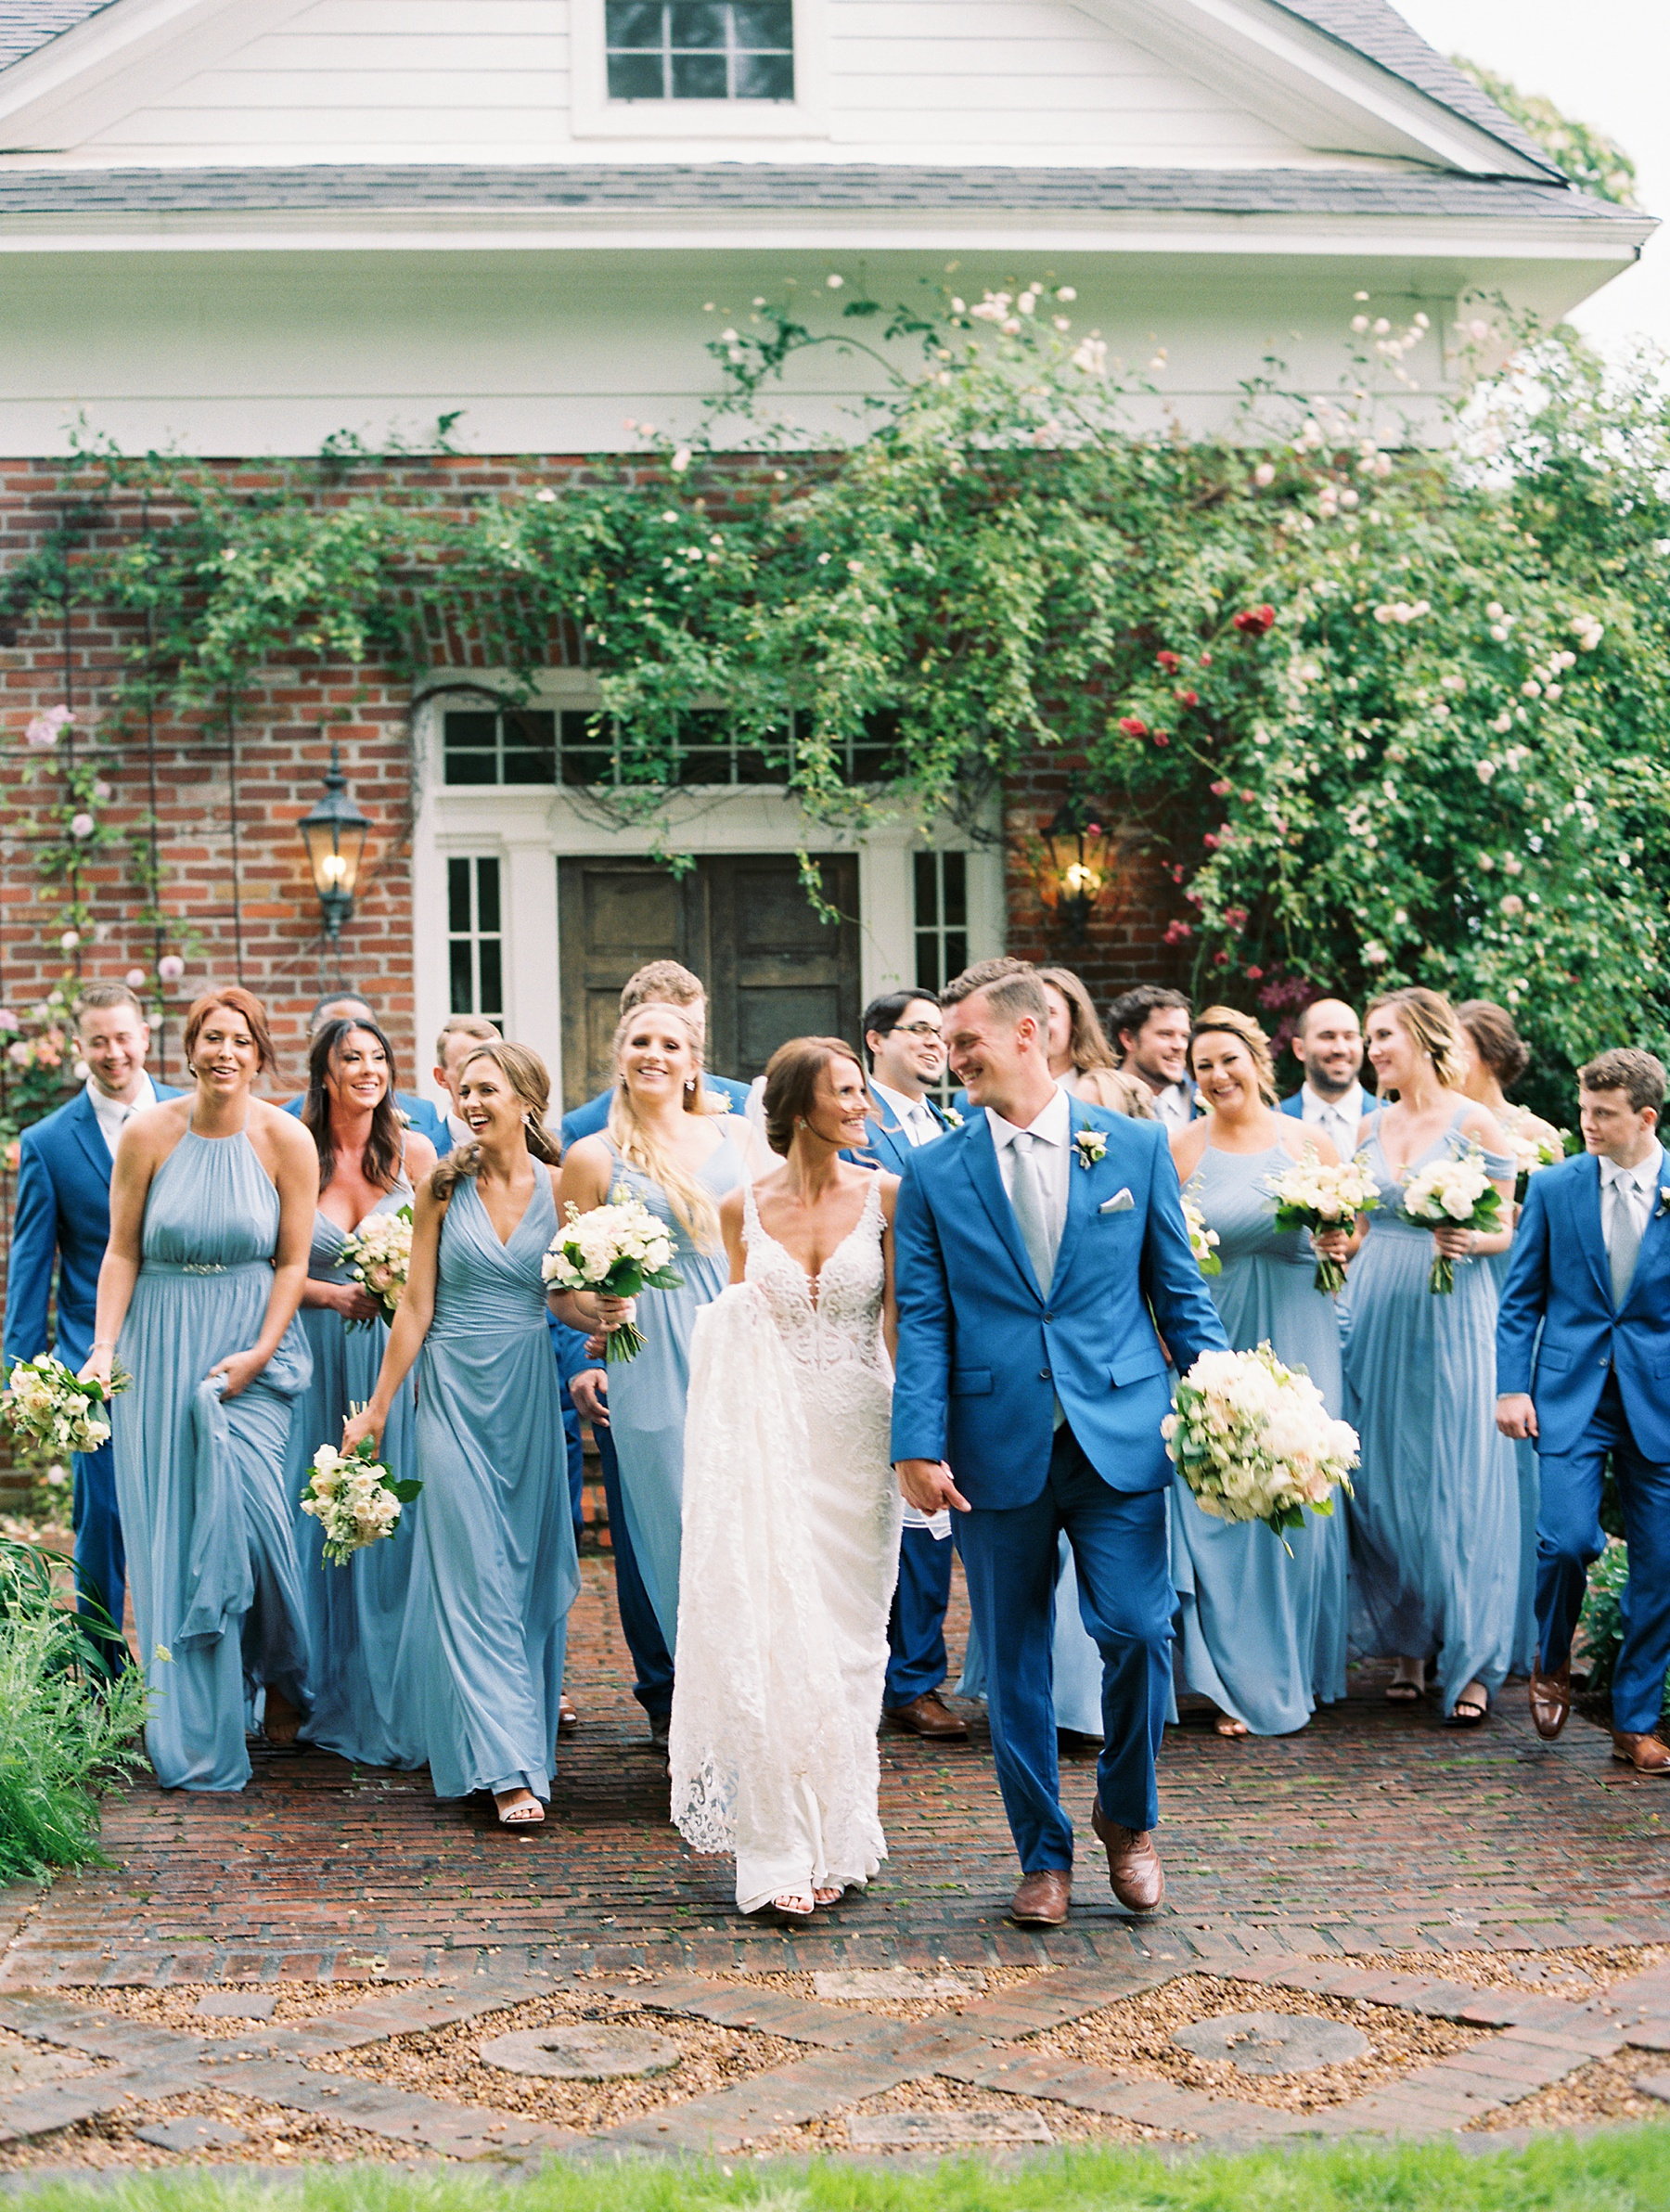 Hedge Farm Weddings Tennessee Wedding Photographer_0607.jpg